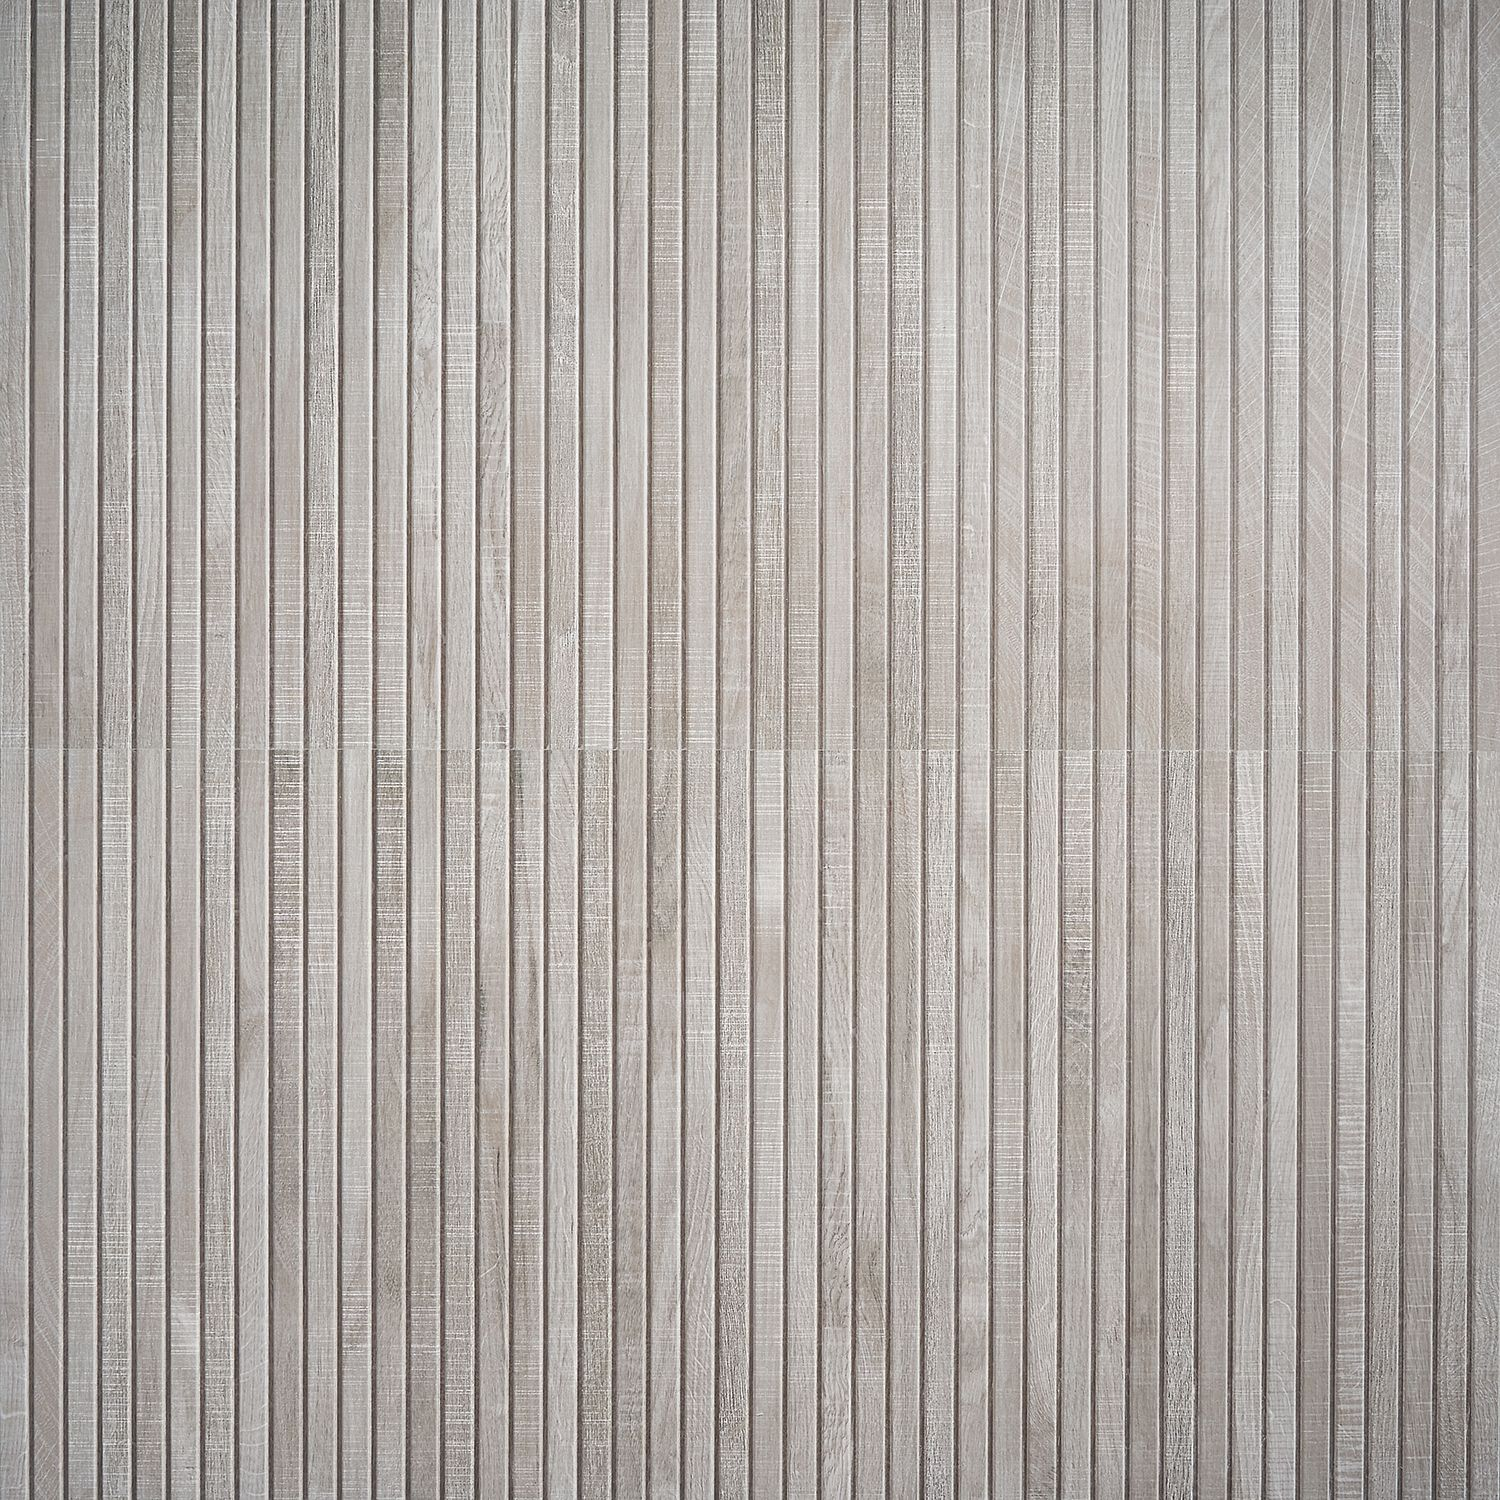 Kenridge Ribbon Gray 24x48 Matte Porcelain Tile